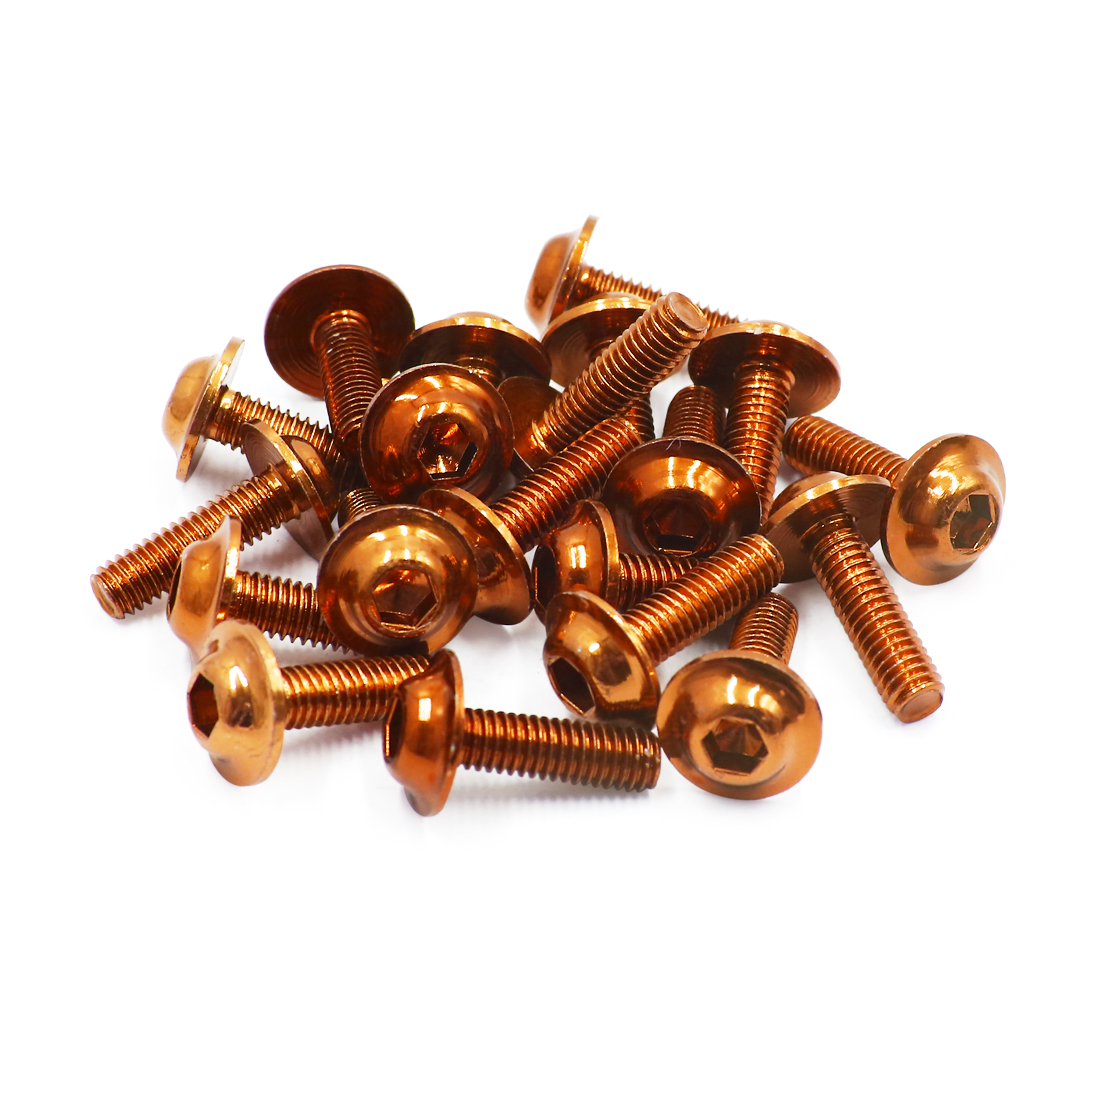 20pcs Orange Aluminum Alloy Motorcycle Hex Socket Head Bolts Screws M6 x 20